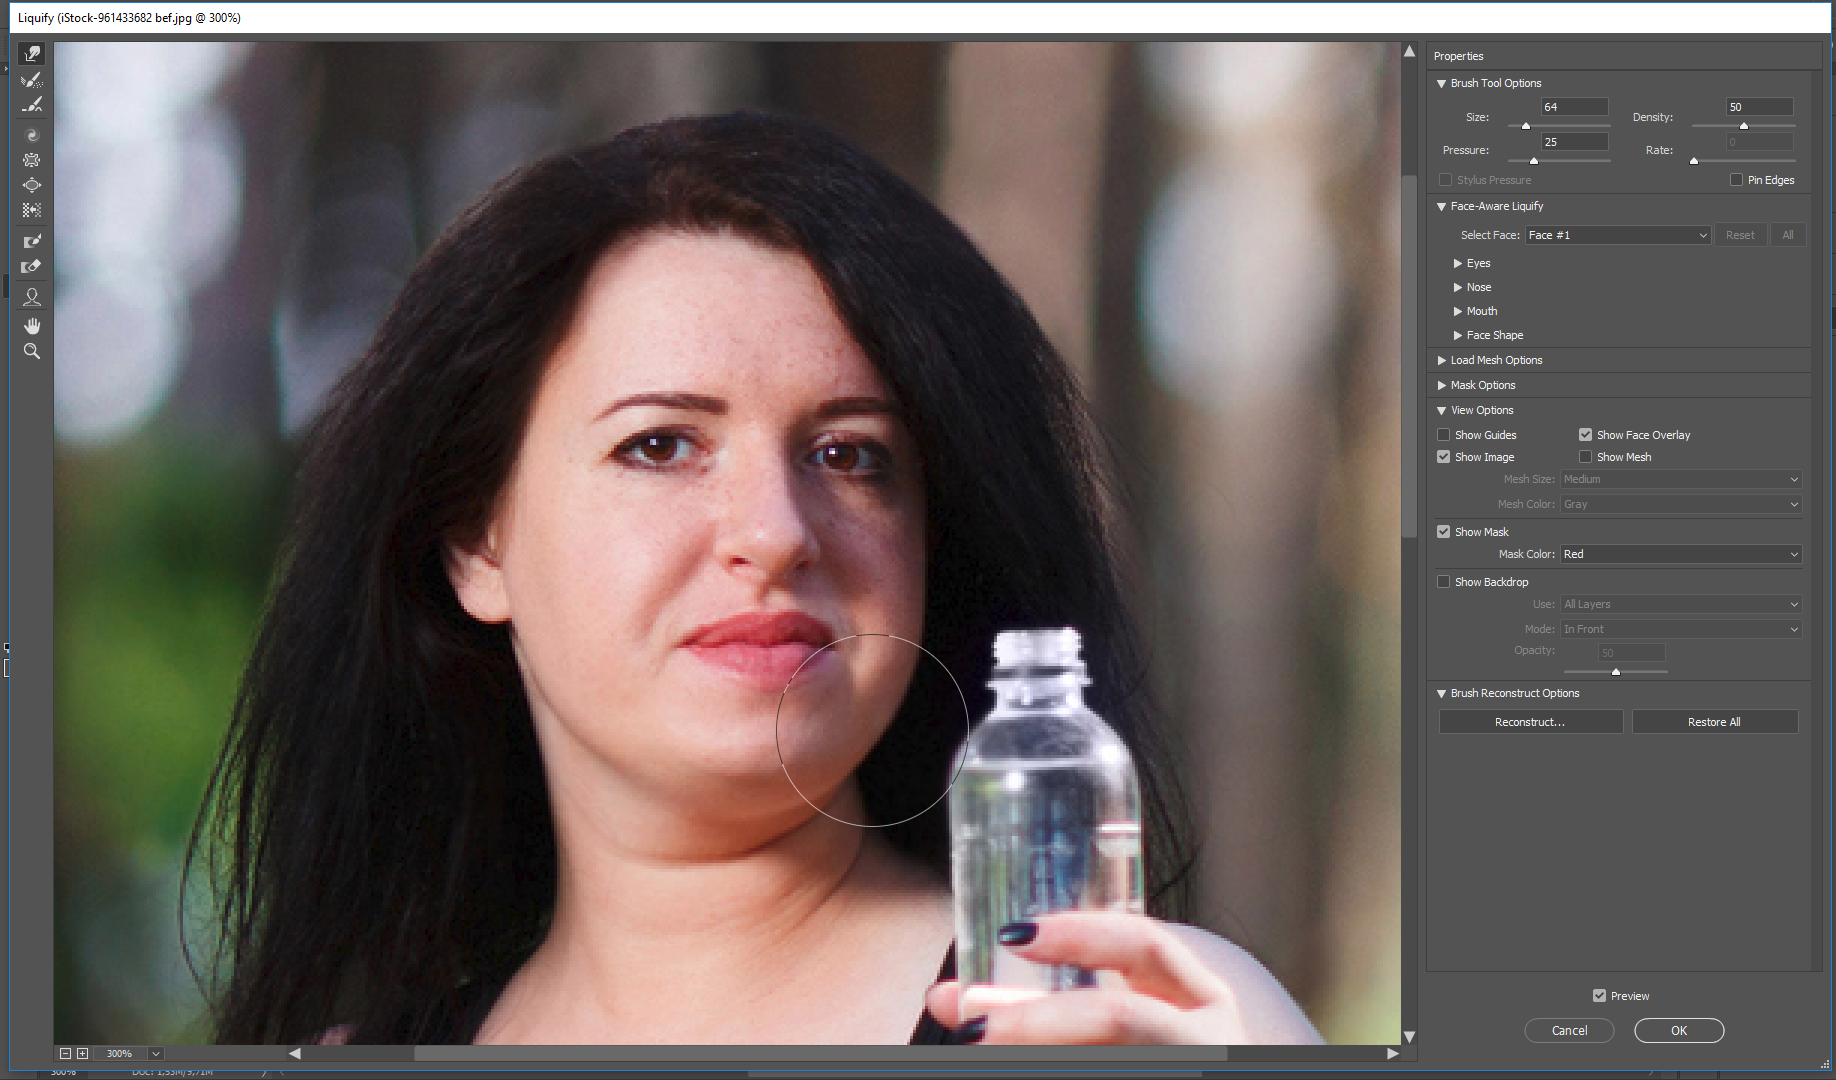 Basic Methods On How To Remove Double Chin Photoshop Photoshop Tutorial Photoshop Tutorial Advanced Photography Tutorials Photoshop